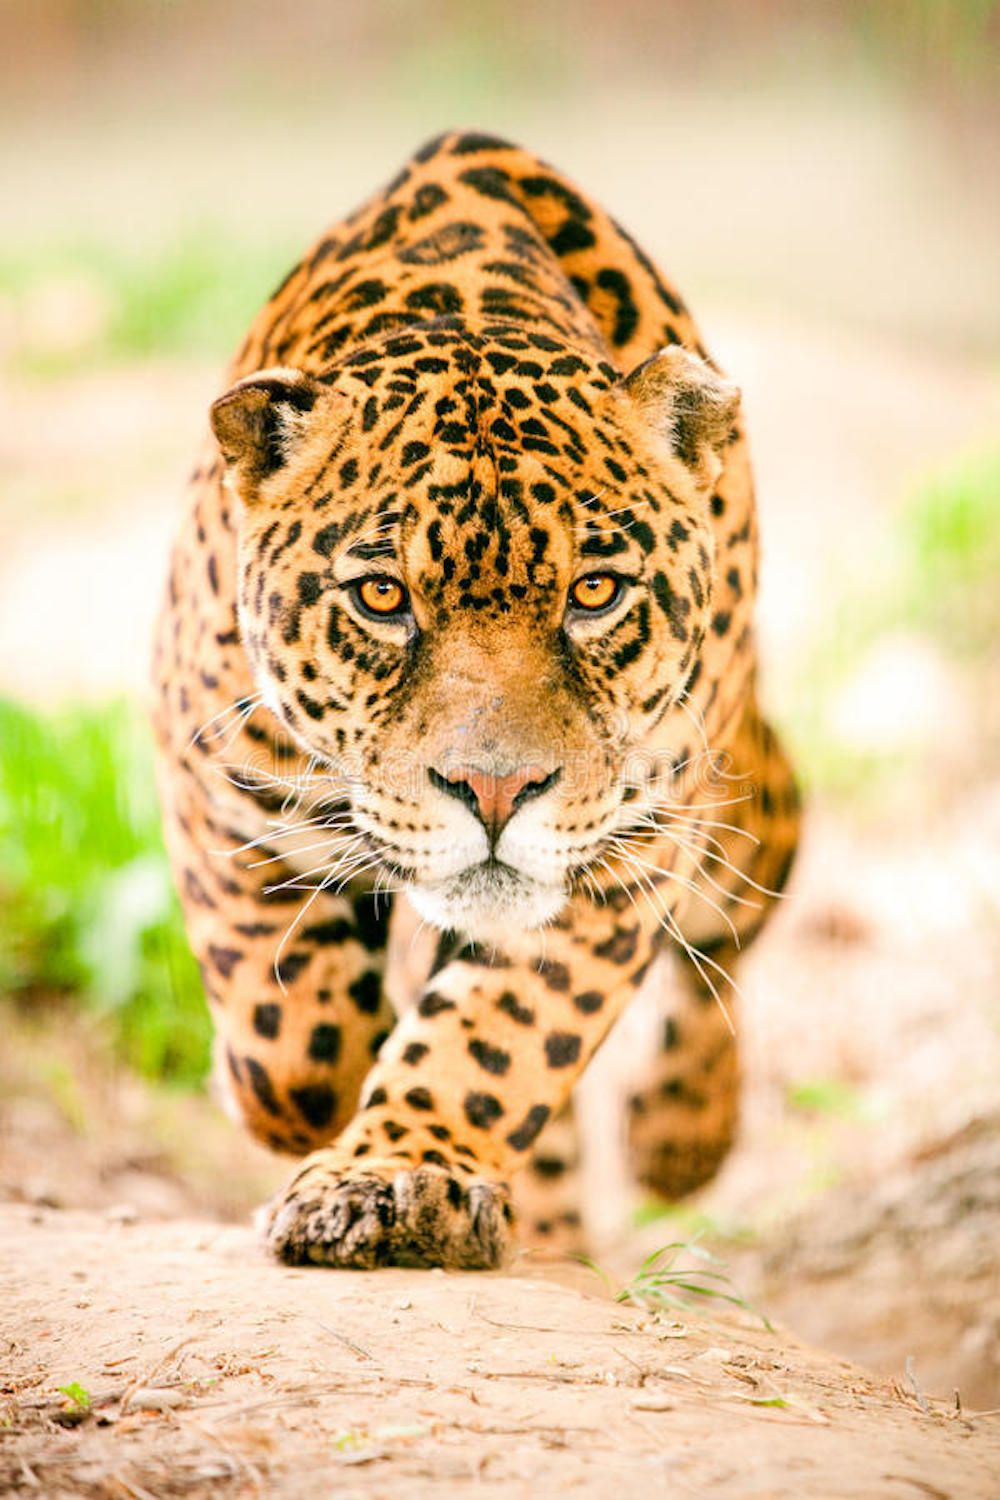 Do You Know The Weight Of A Jaguar Can A Human Lift It Animals Dangerous Animals Leopard Animal